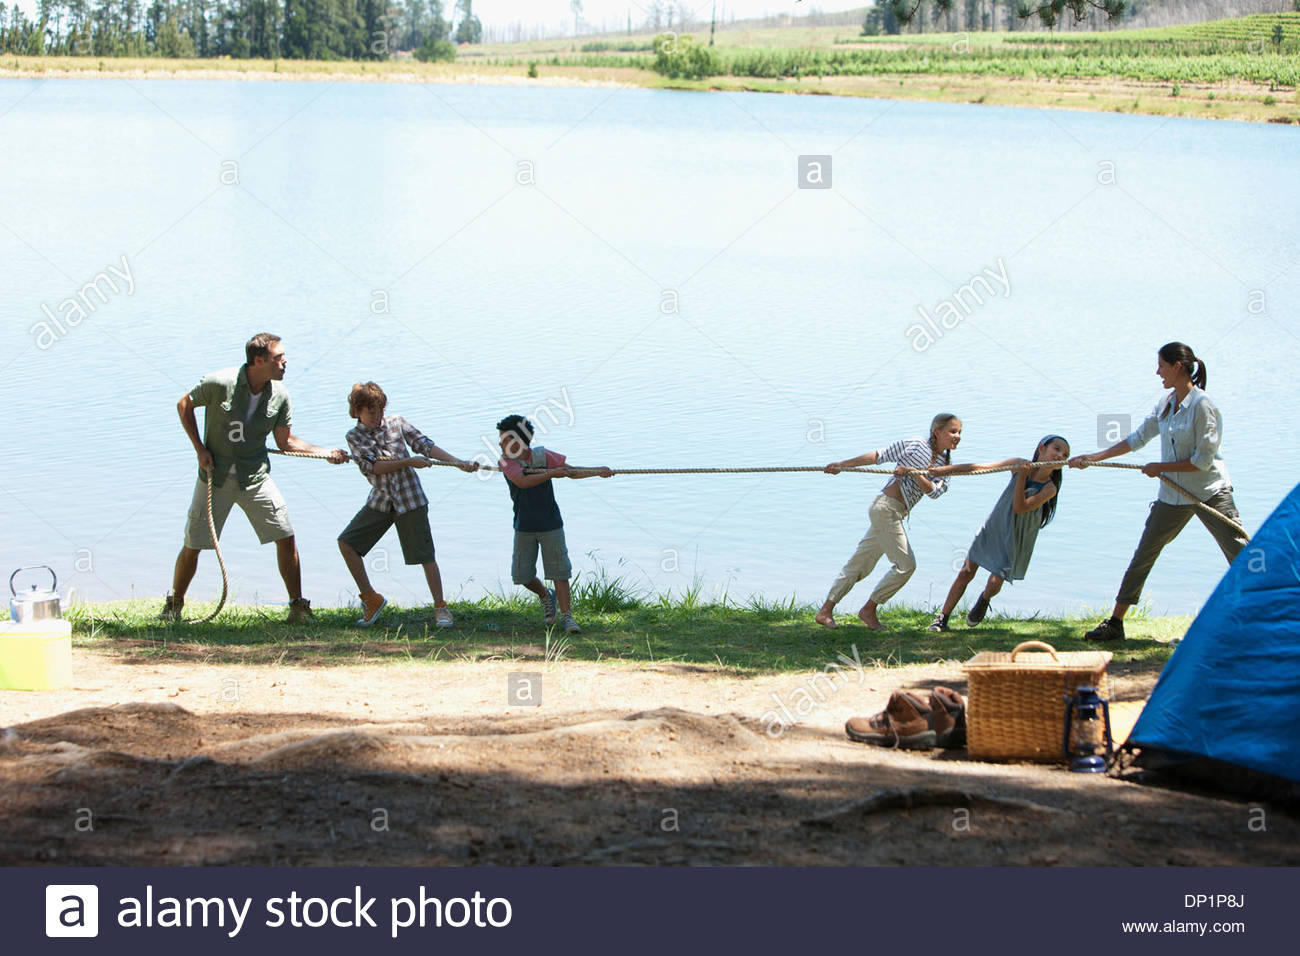 Family playing tug-of-war at campsite - Stock Image